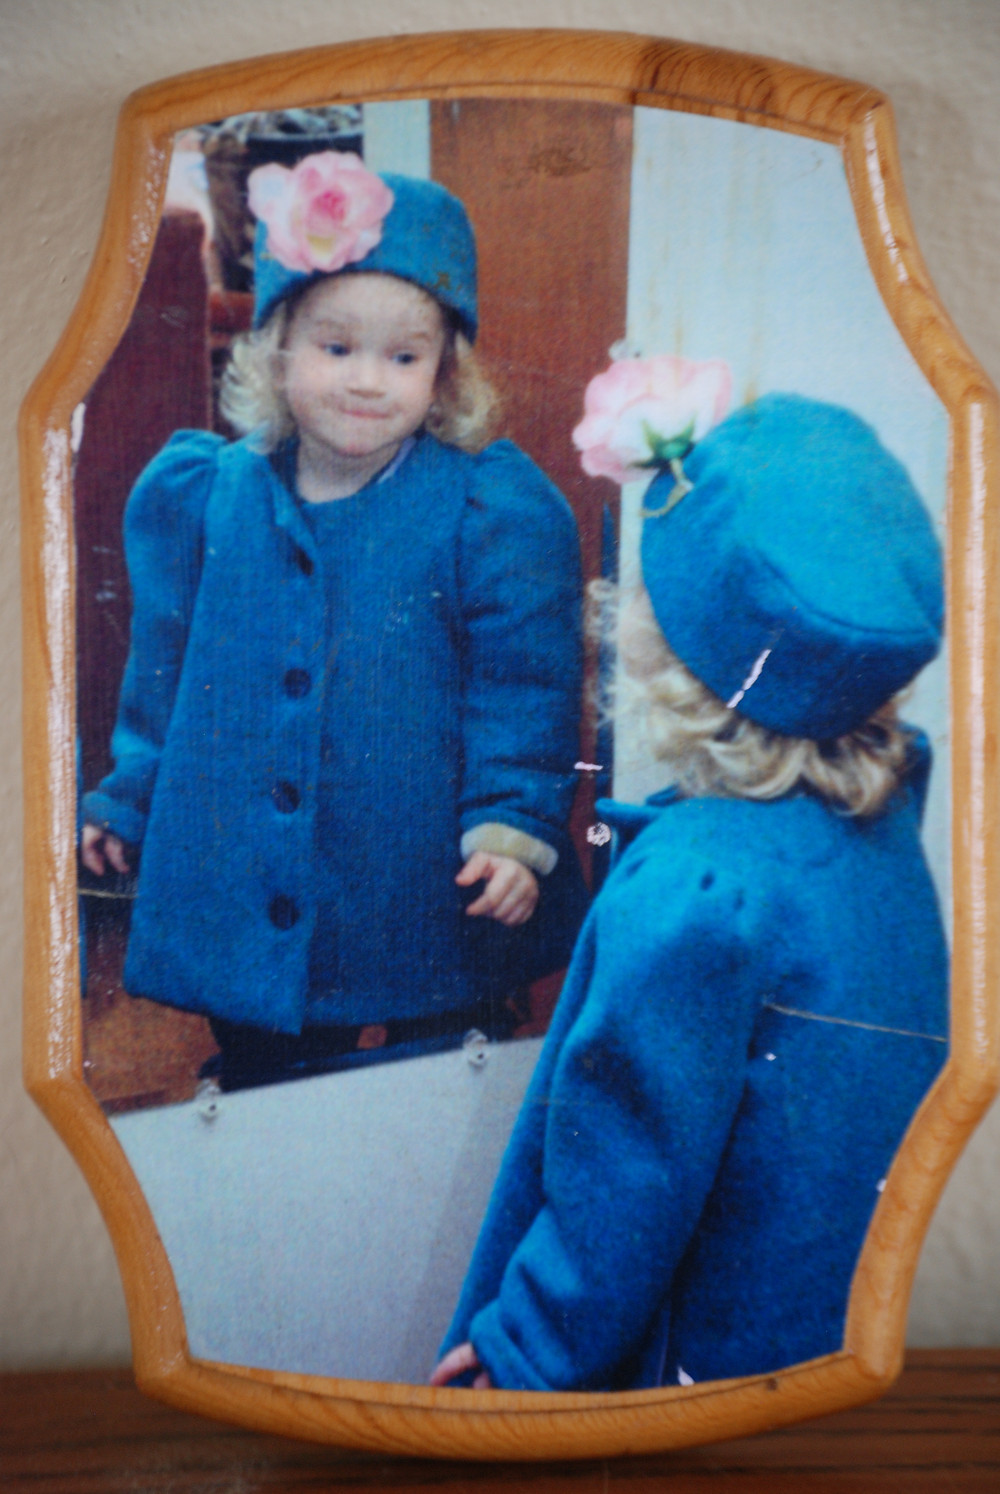 Decoupage  print on wood of a little girl in a fancy coat and matching hat smiling at her reflection in a mirror.